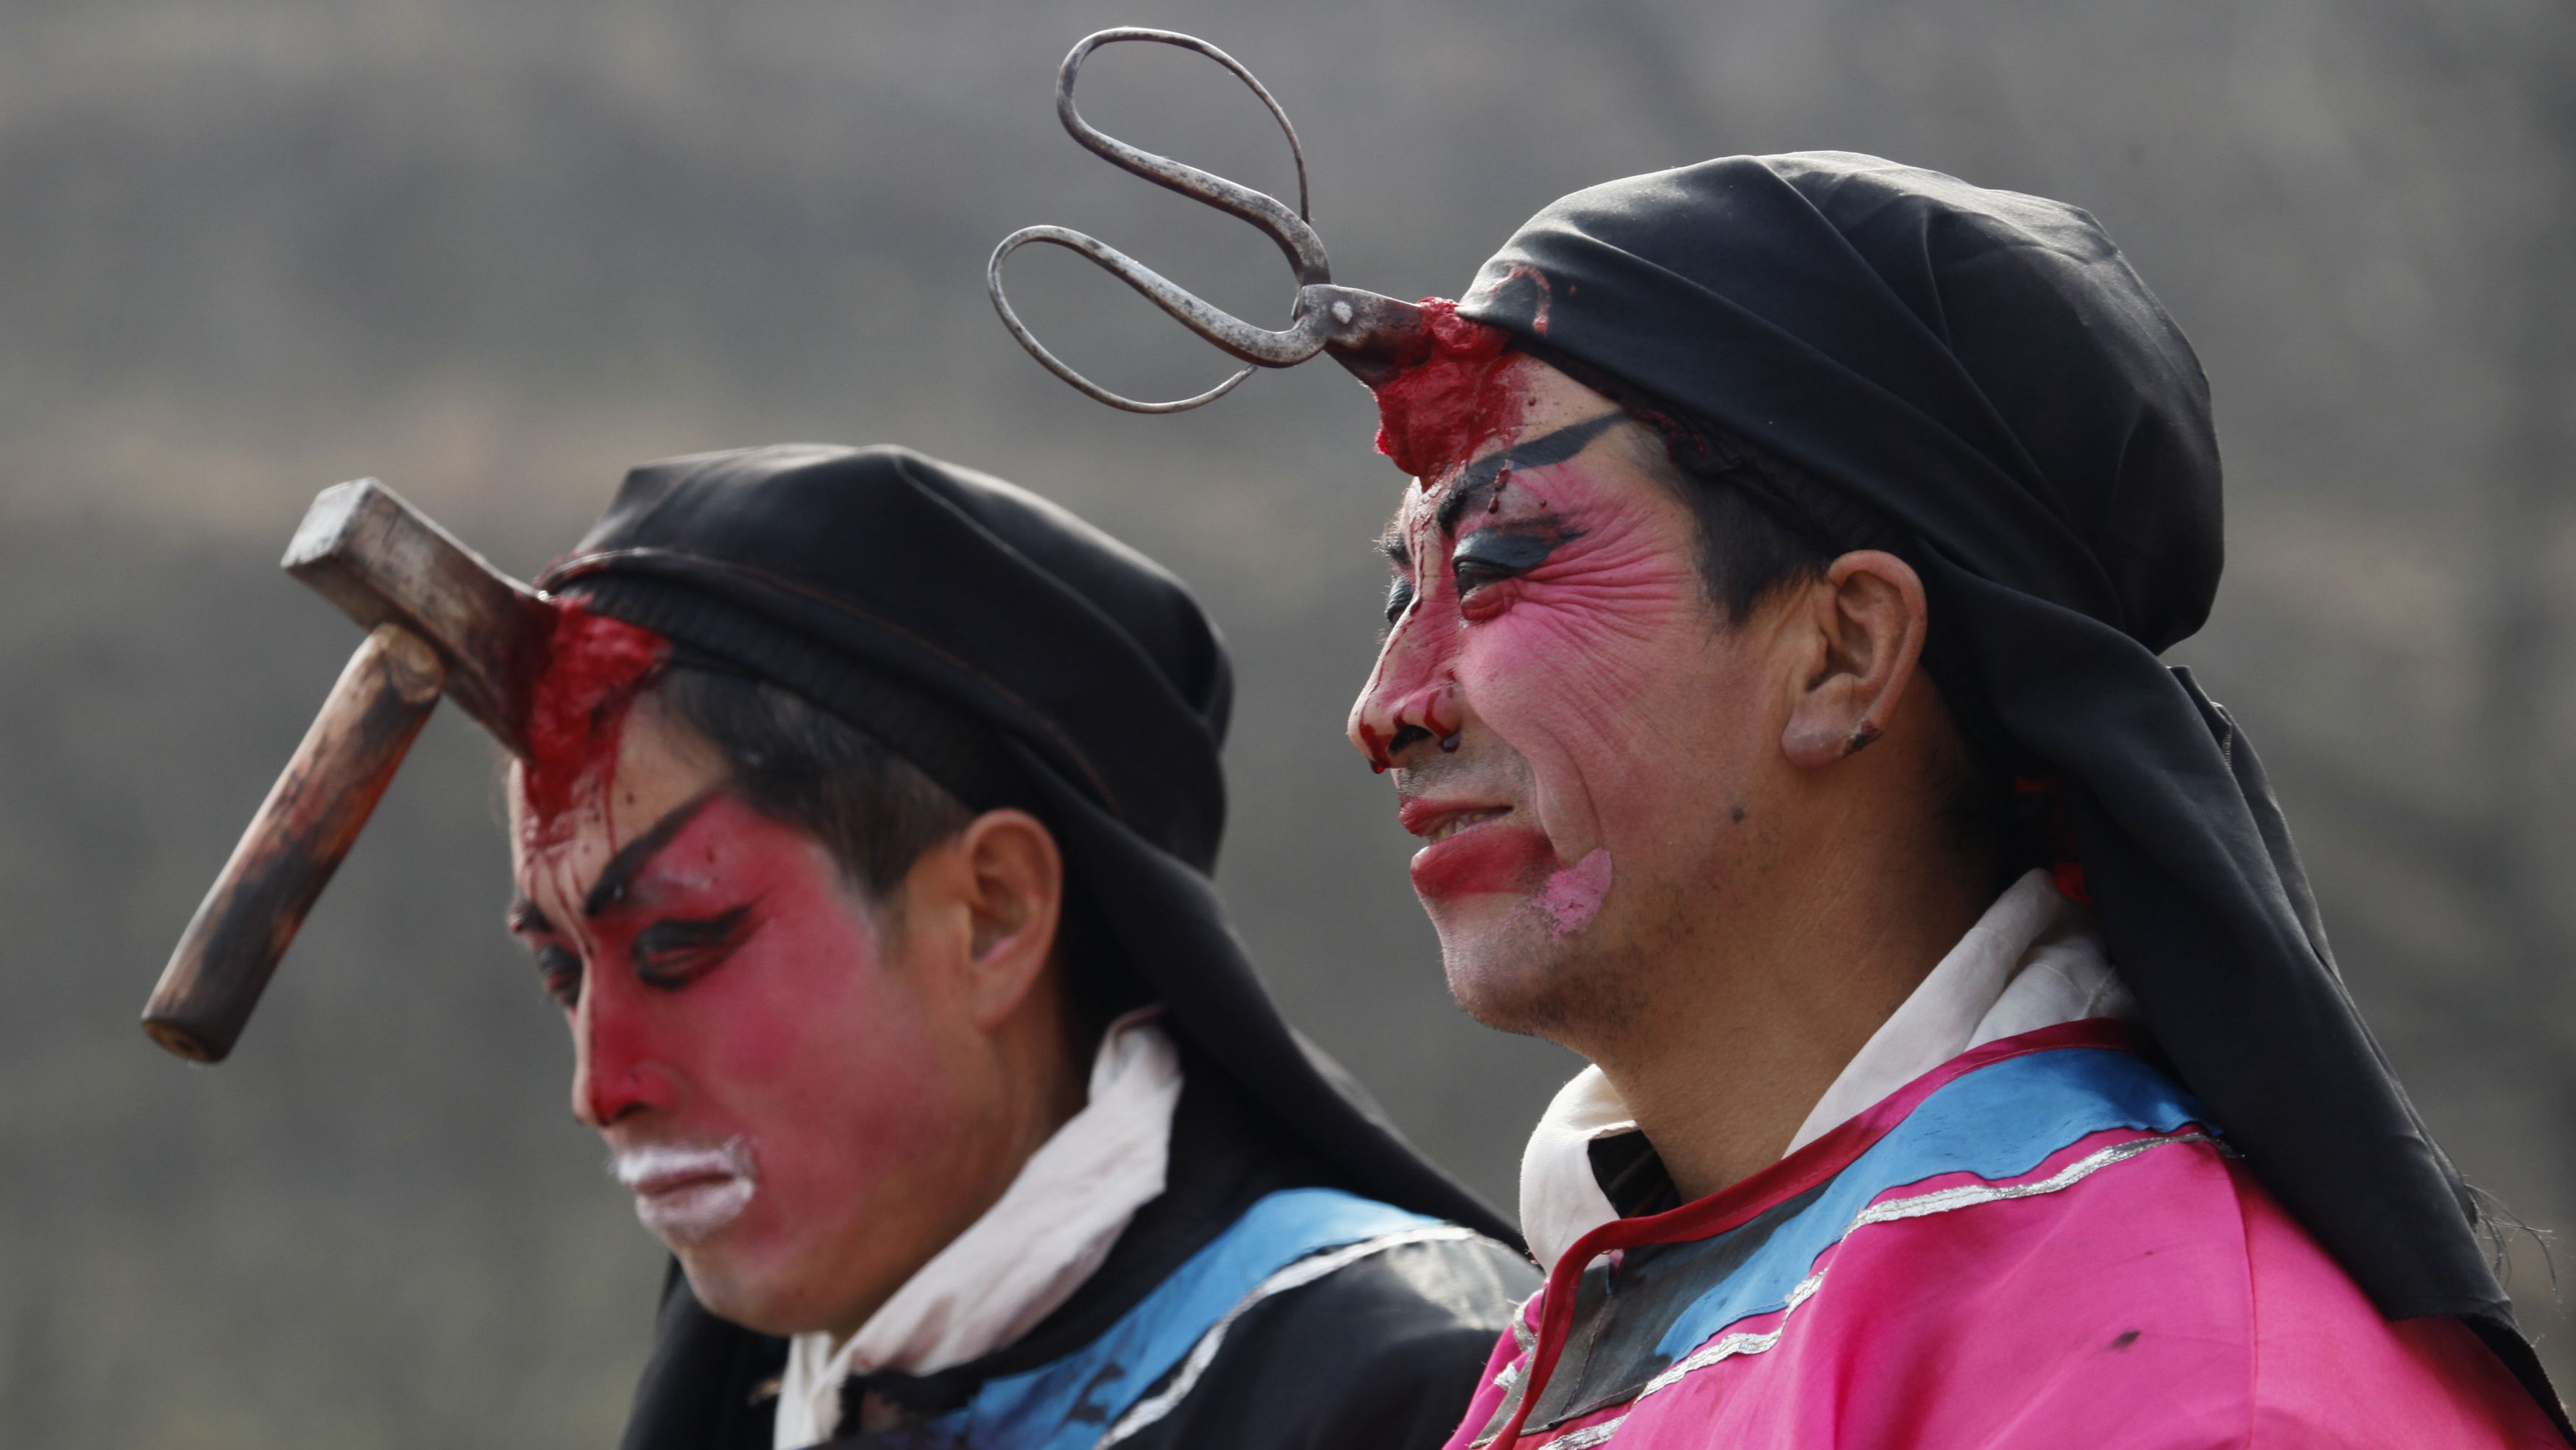 """Local performers are dressed as villains injured by an axe and a pair of scissors during a traditional """"Kuaihuo"""" parade at Chisha, Shaanxi province February 8, 2009. """"Kuaihuo"""" is a local traditional performance which originated from an ancient story about chastising villains and has been performed for over 200 years to warn people to be behave well. REUTERS/Reinhard Krause"""